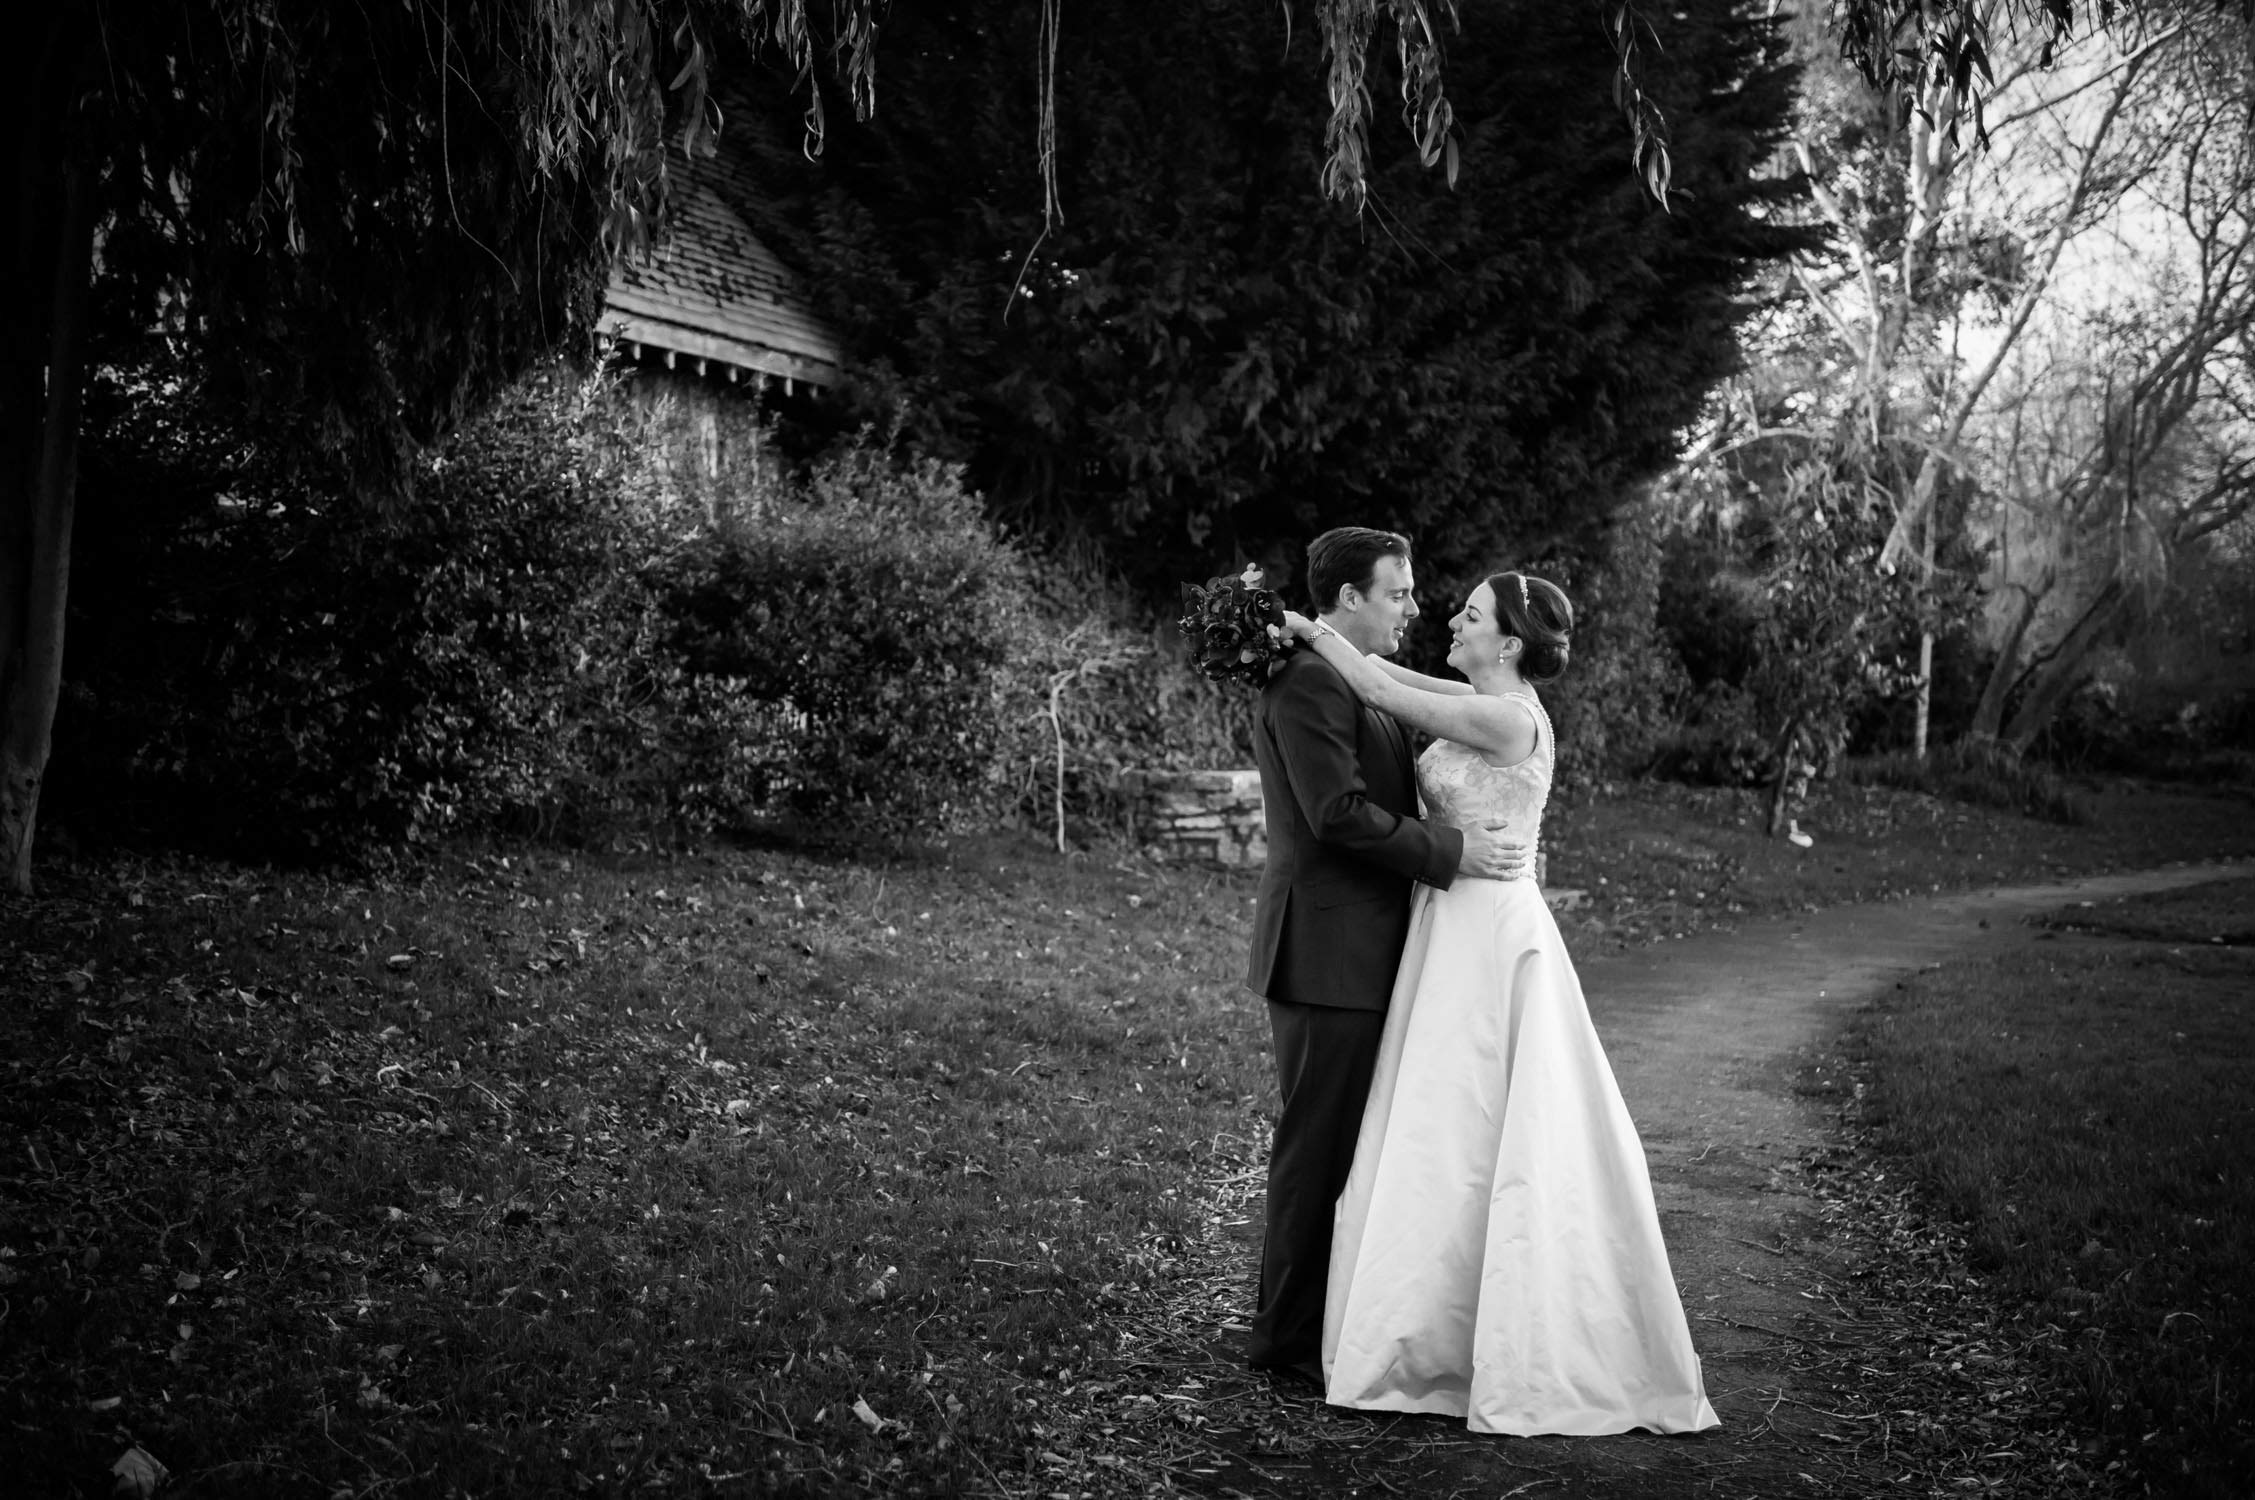 bride and groom on their wedding day. wedding photography in devon